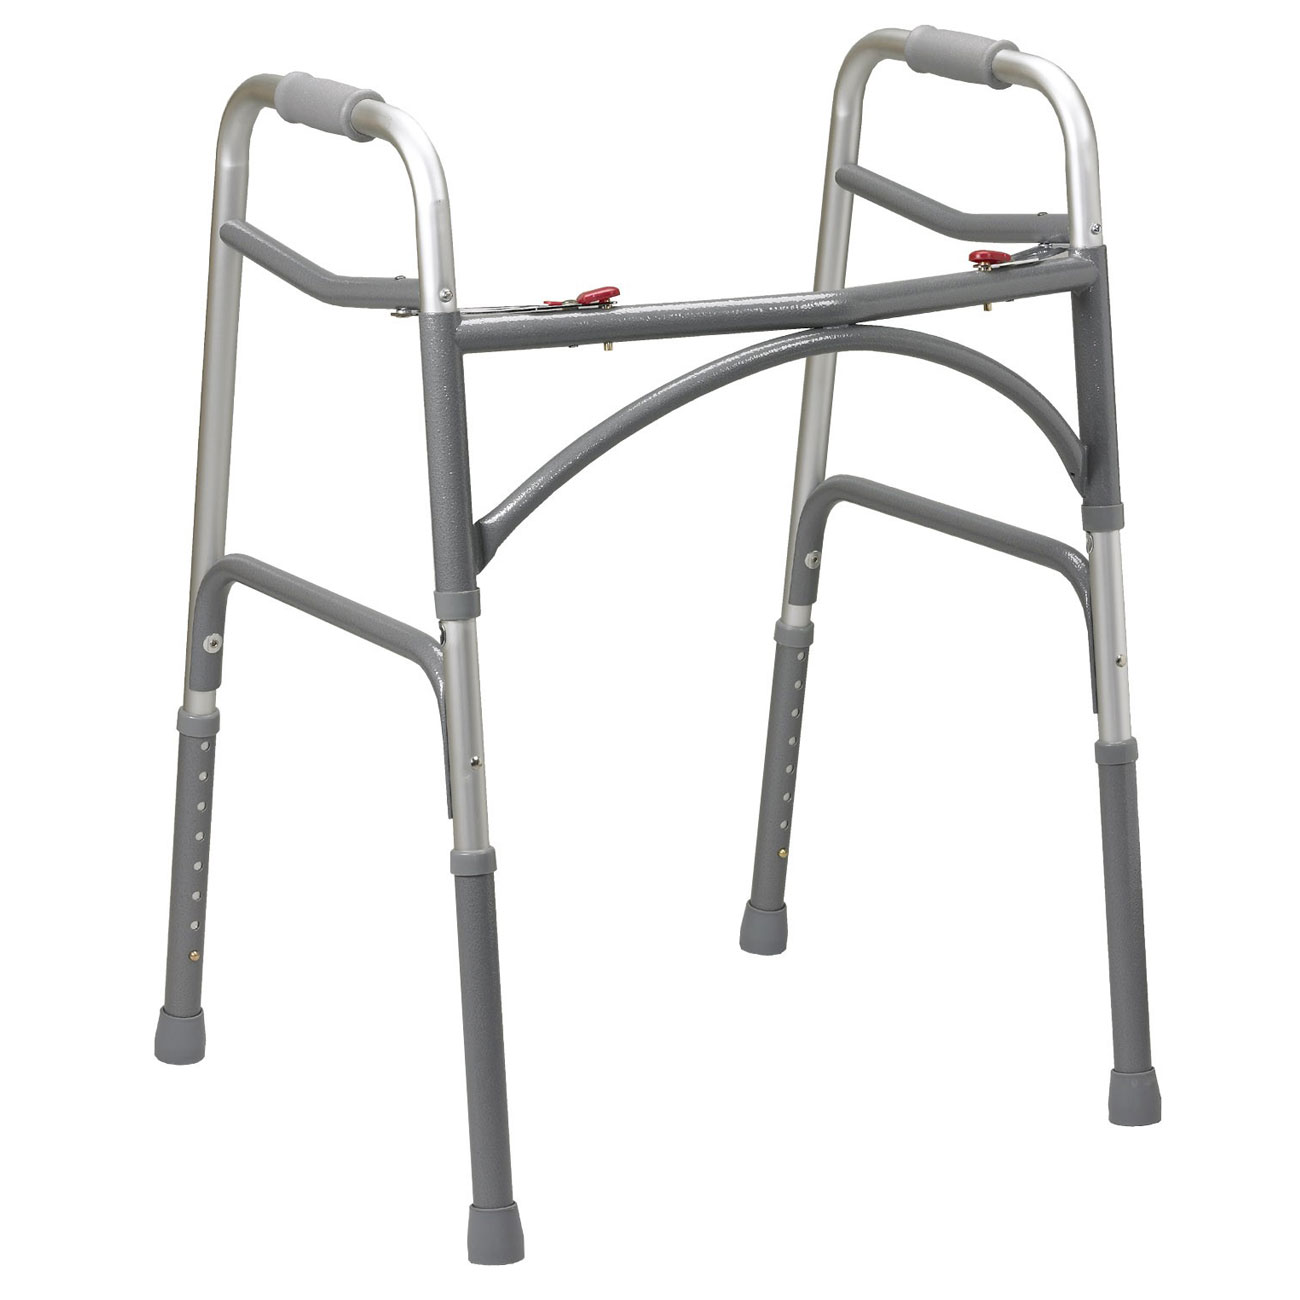 Oversized Aluminum Folding Walker - 2 Button-Adult